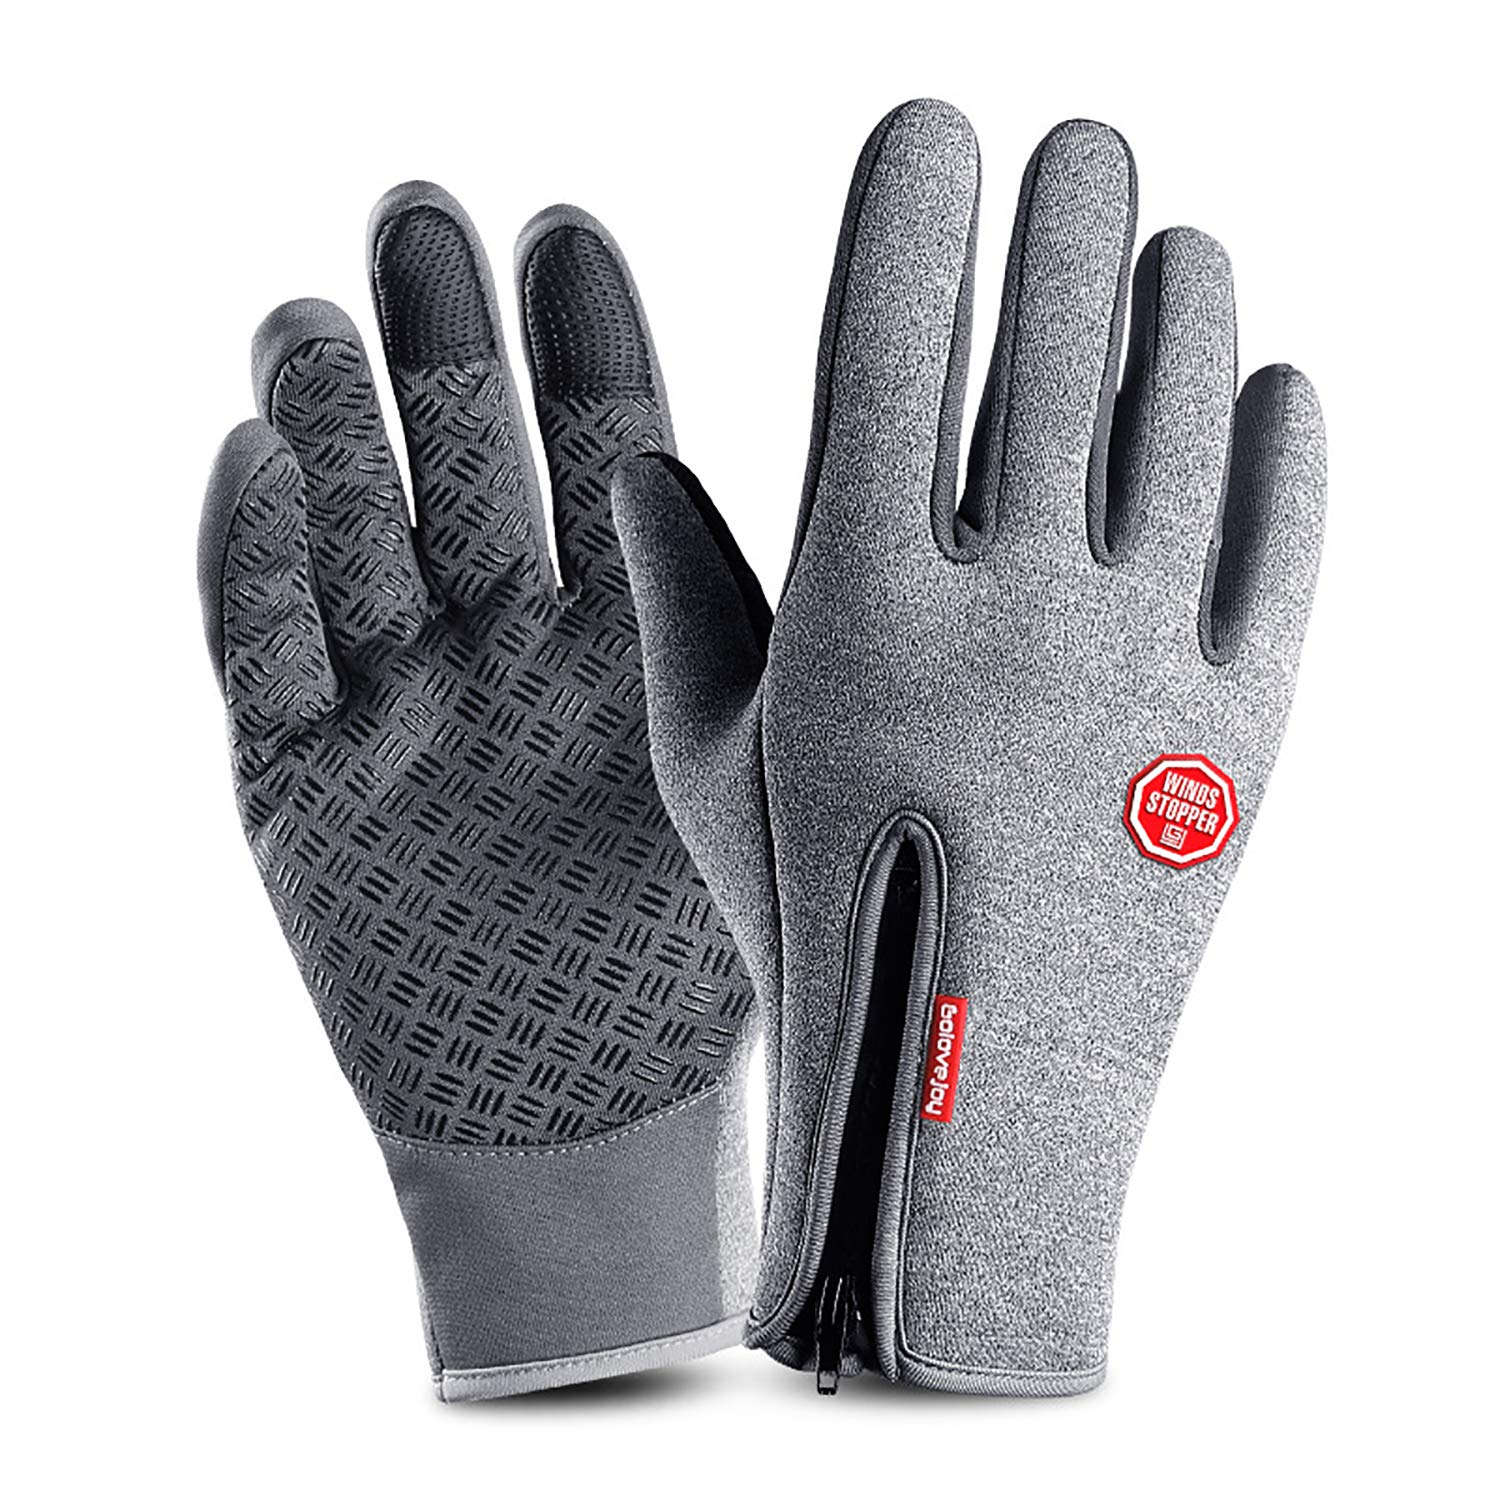 June Sports Cycling Gloves, Windproof Touchscreen Glove Anti-Slip Silicone Winter Outdoor Bike Gloves Cold Weather Driving Warm Thermal Gloves GL2